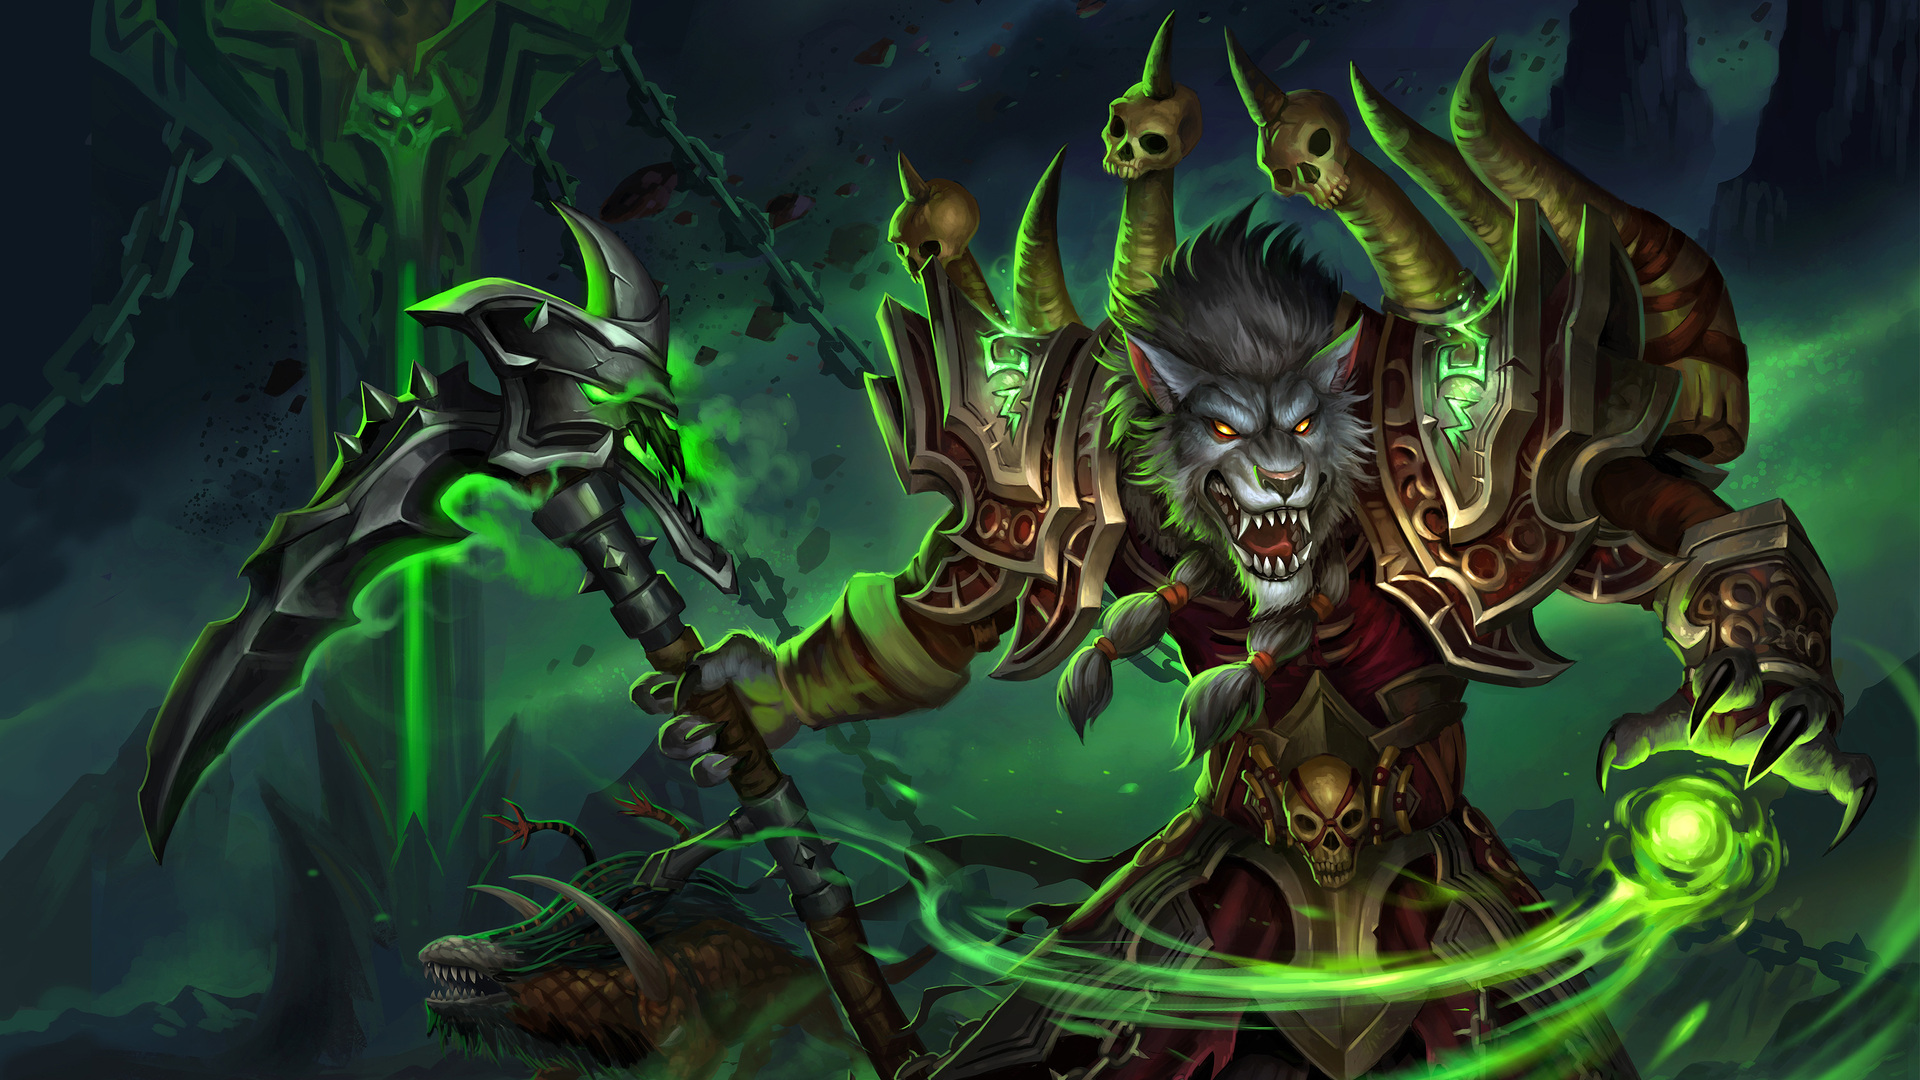 1920x1080 World Of Warcraft Worgen Warlock Laptop Full Hd 1080p Hd 4k Wallpapers Images Backgrounds Photos And Pictures